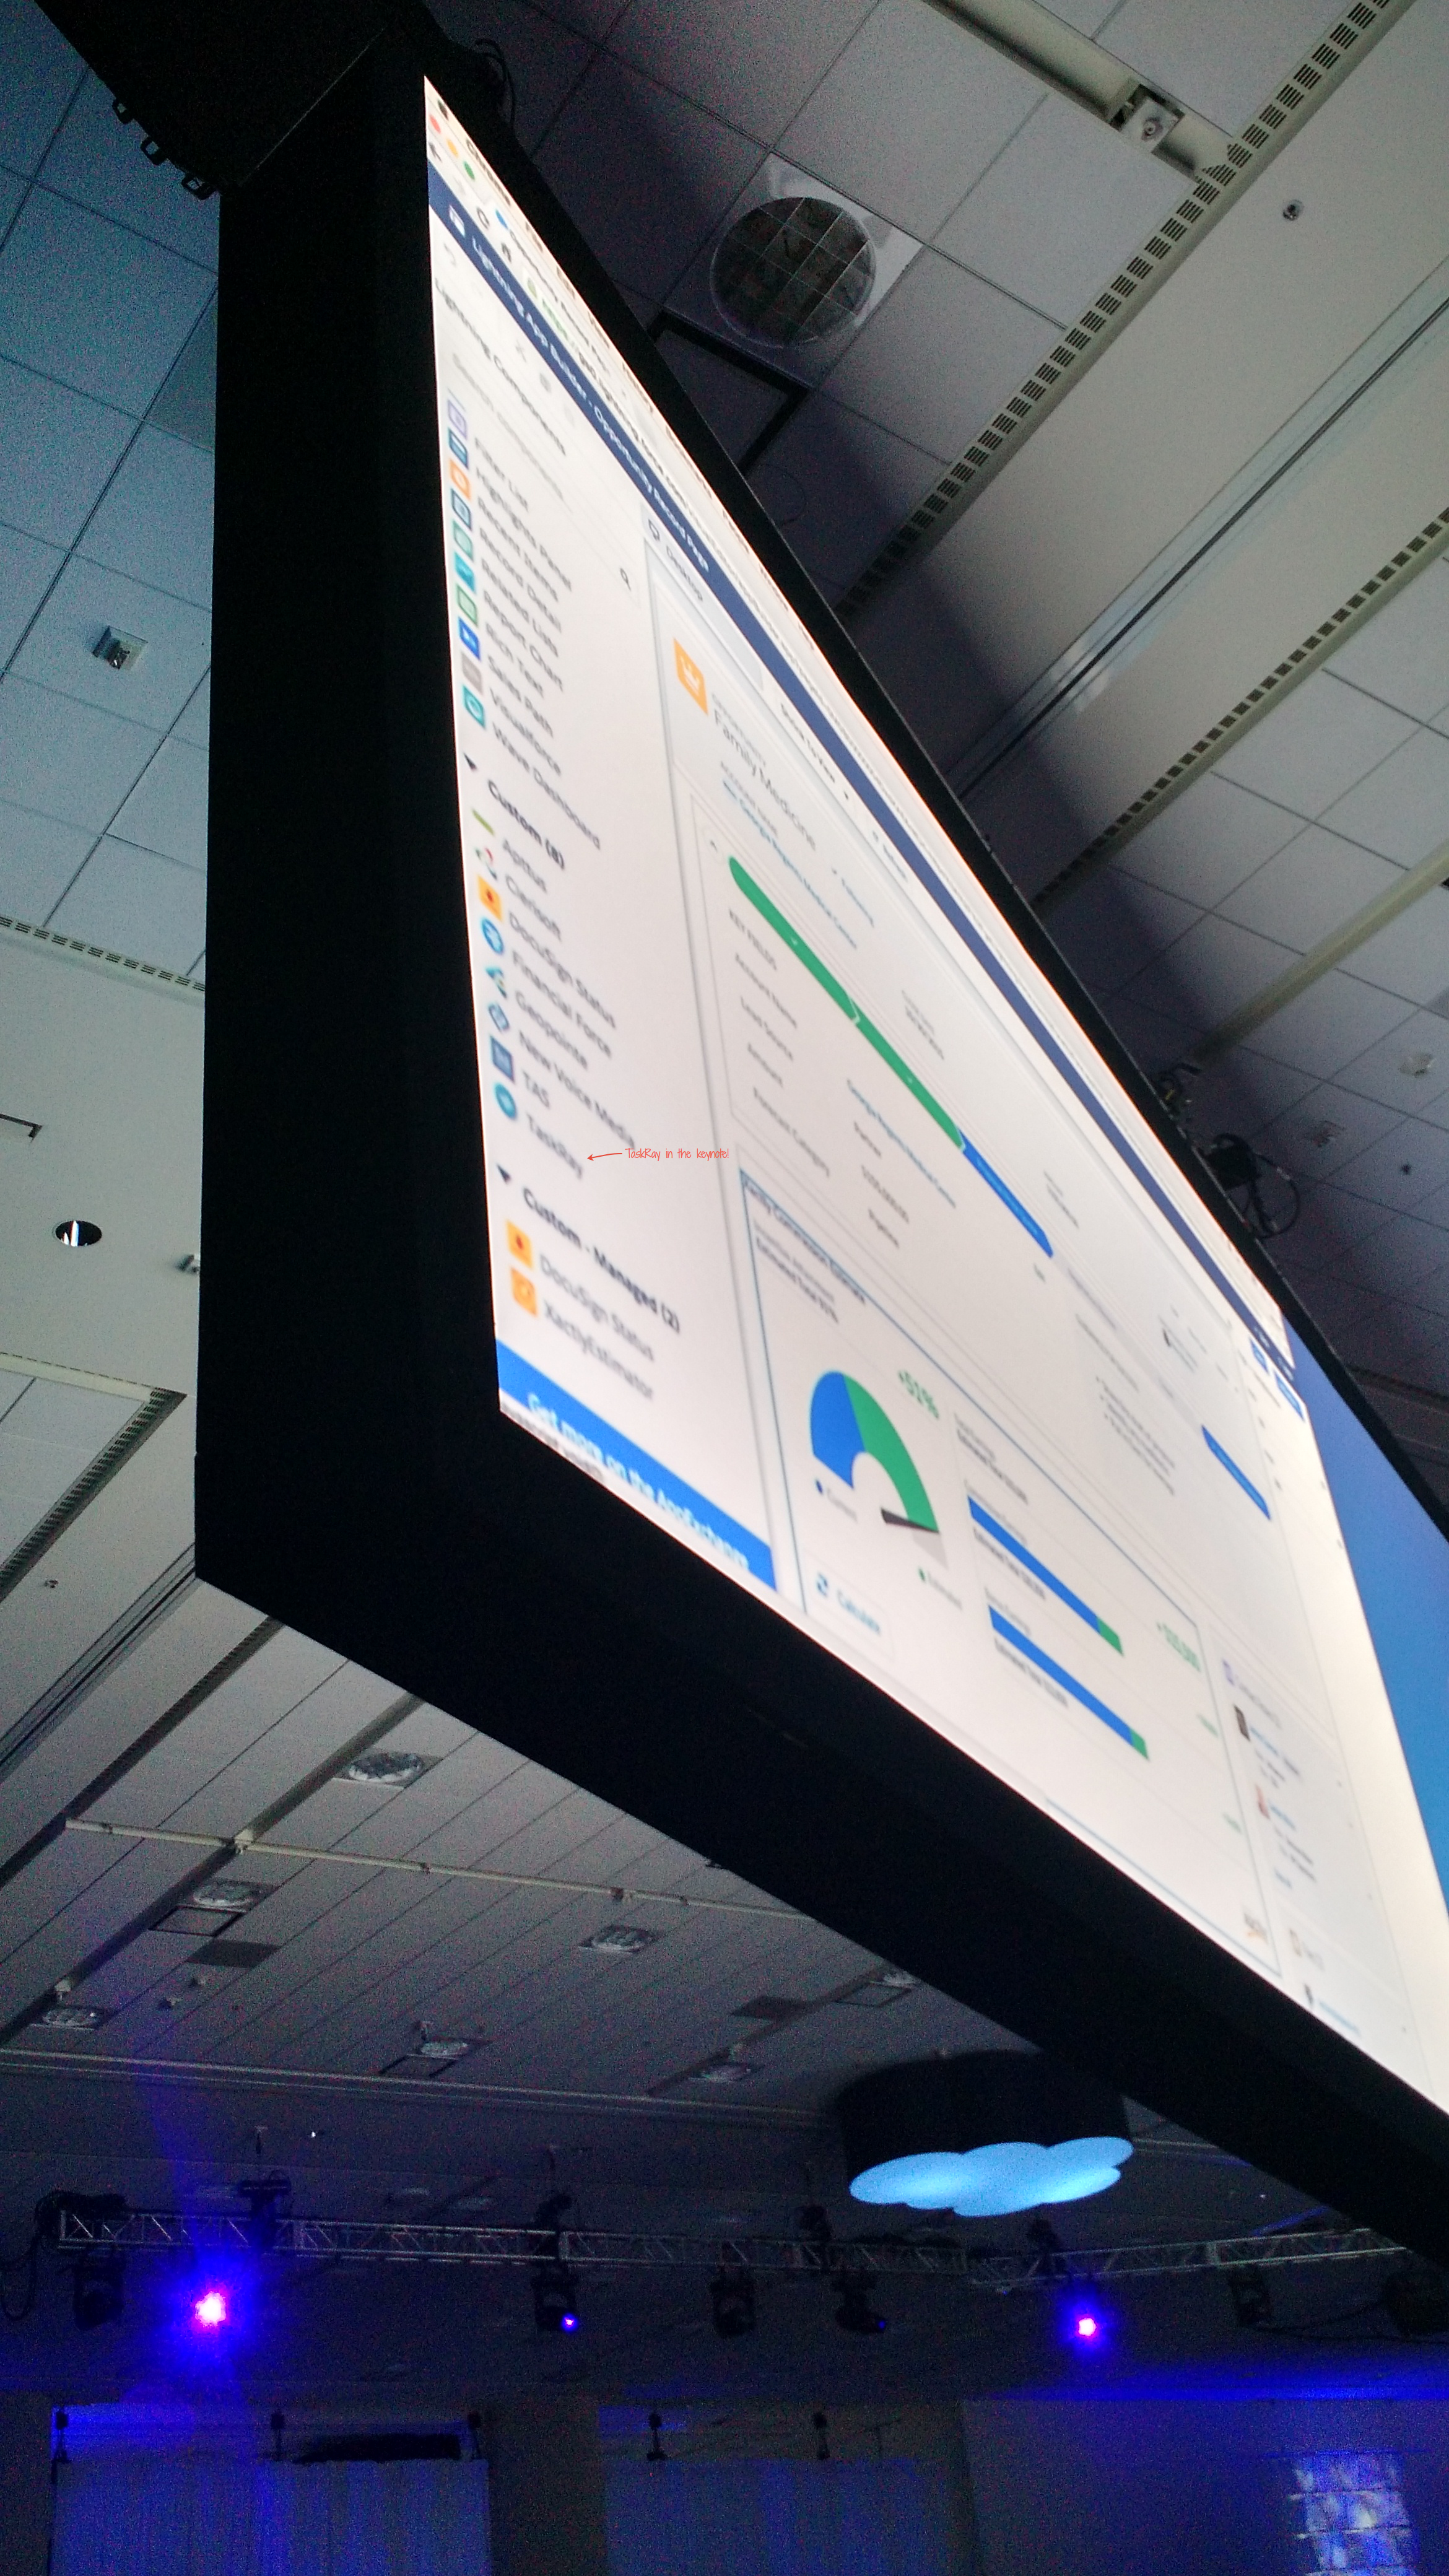 TaskRay made an on-screen appearance in the main keynote!